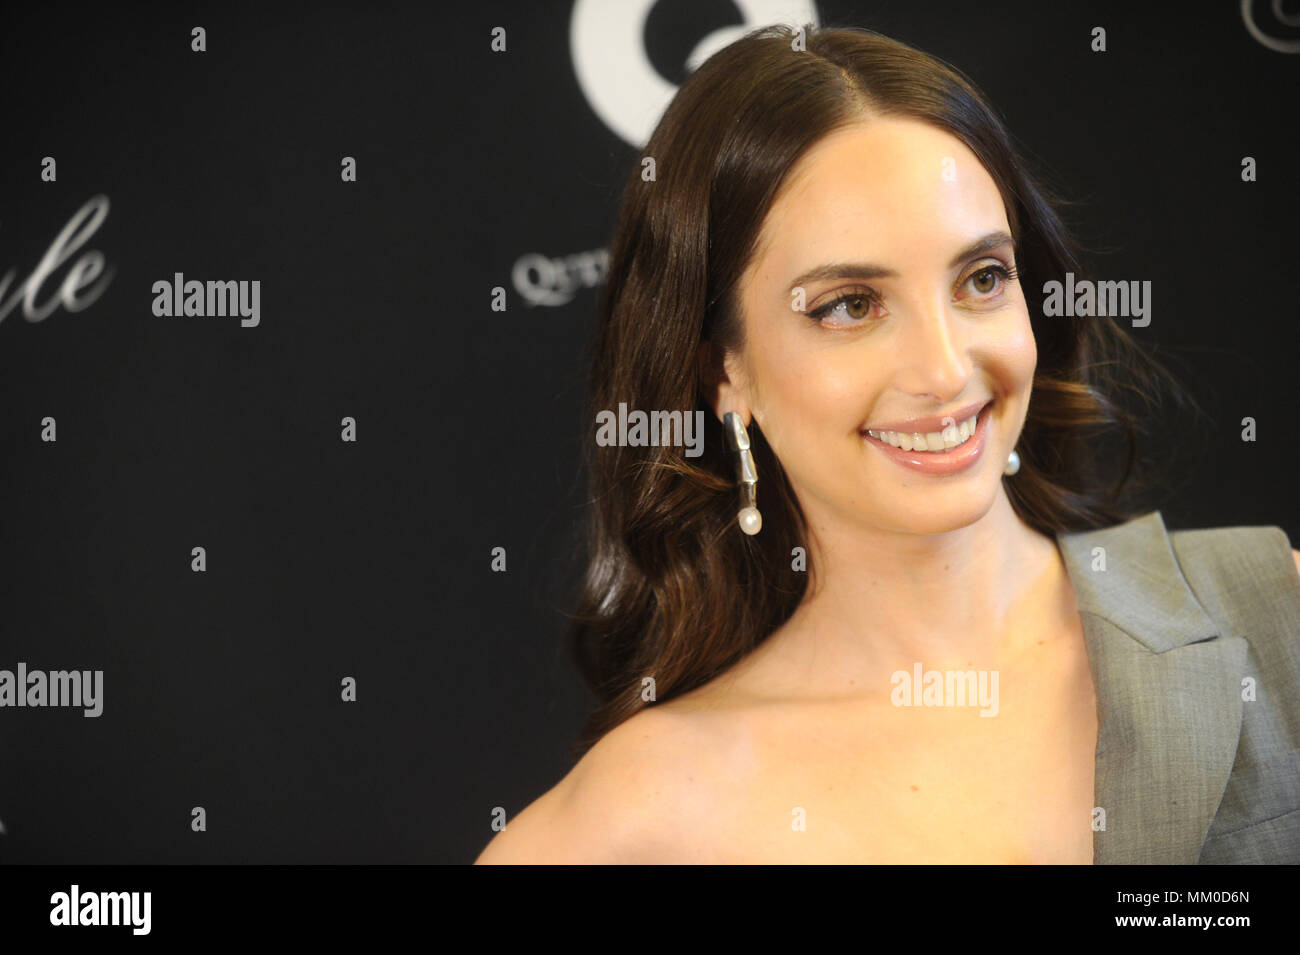 Watch Alexa ray joel portrait in new york to promote her show video